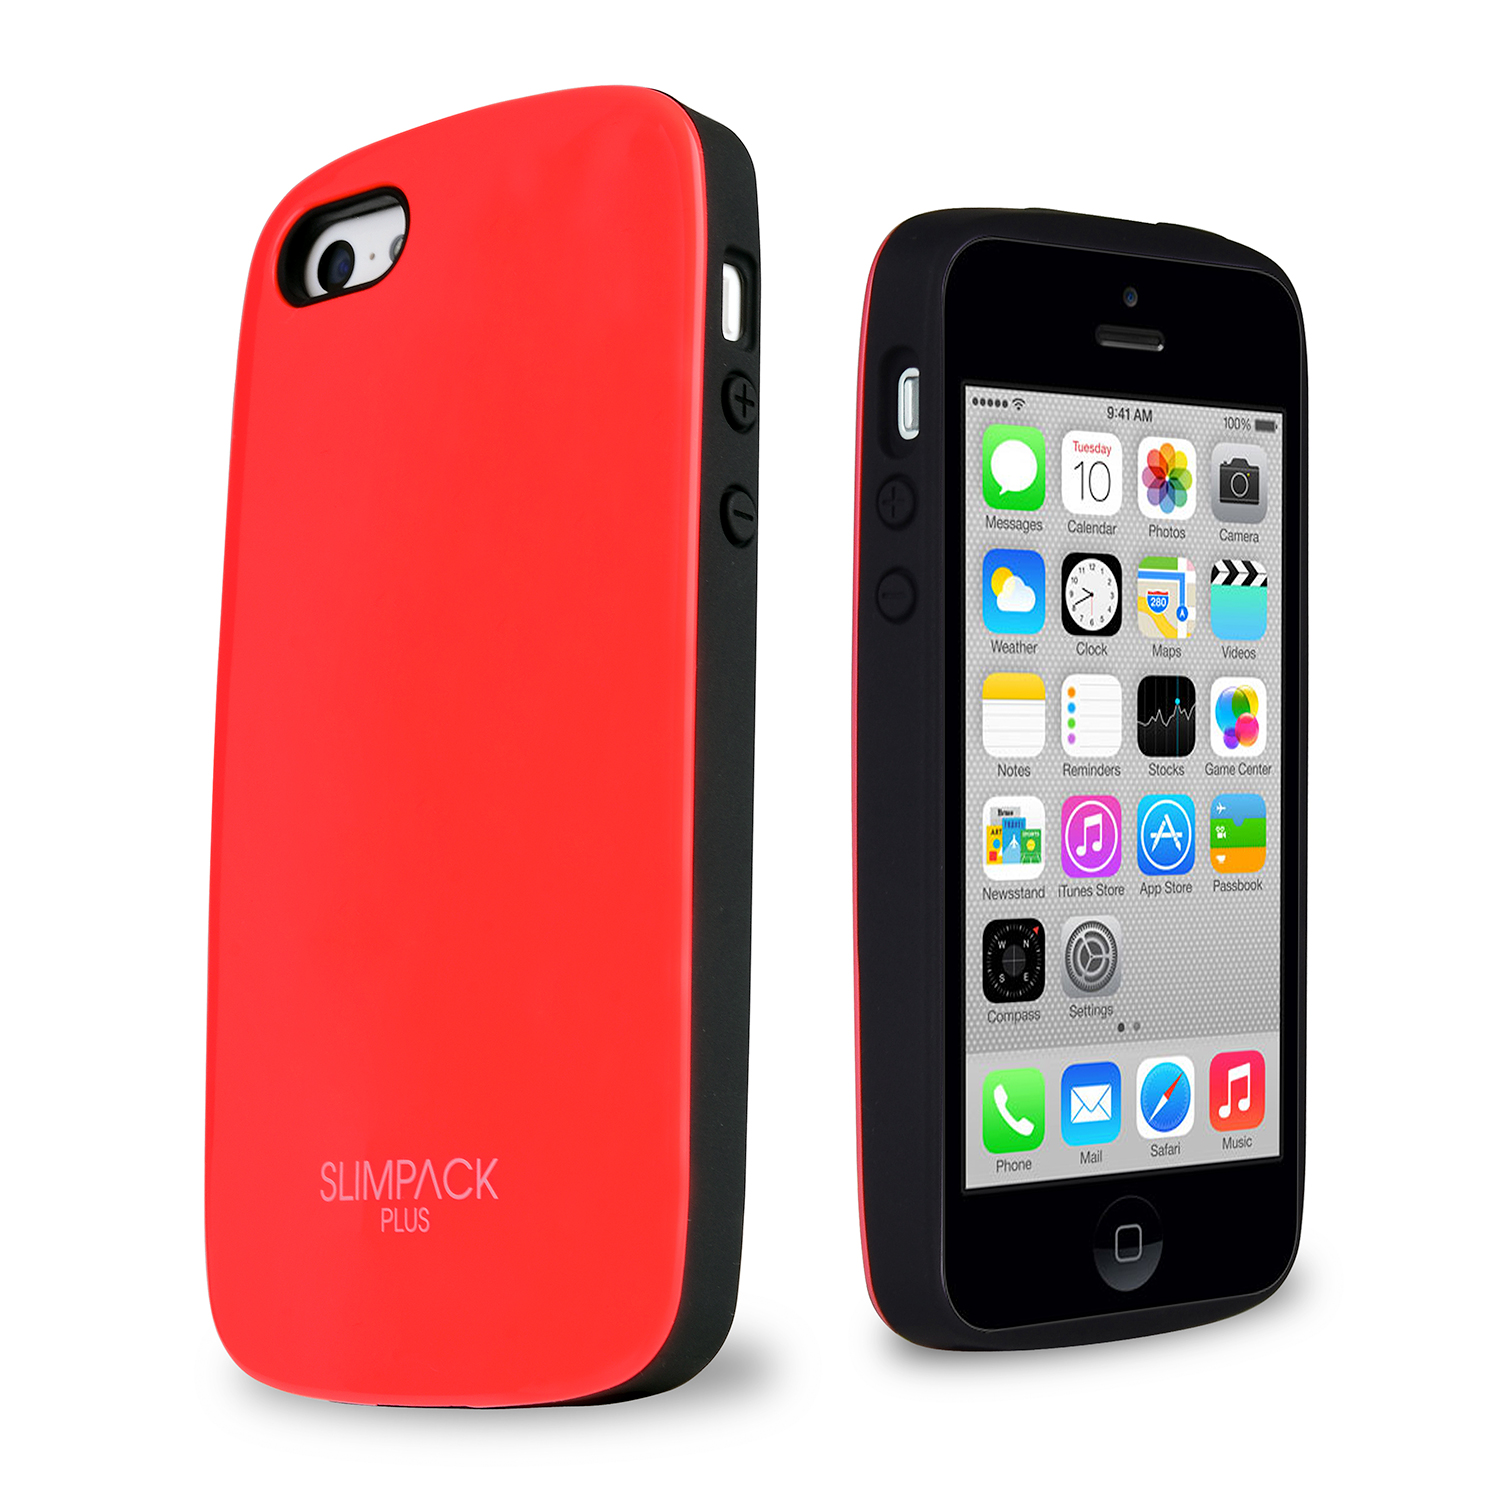 SLIMPACK® Premium Plus™ iPhone 5C Case w/ Hidden Card Slot [Red]